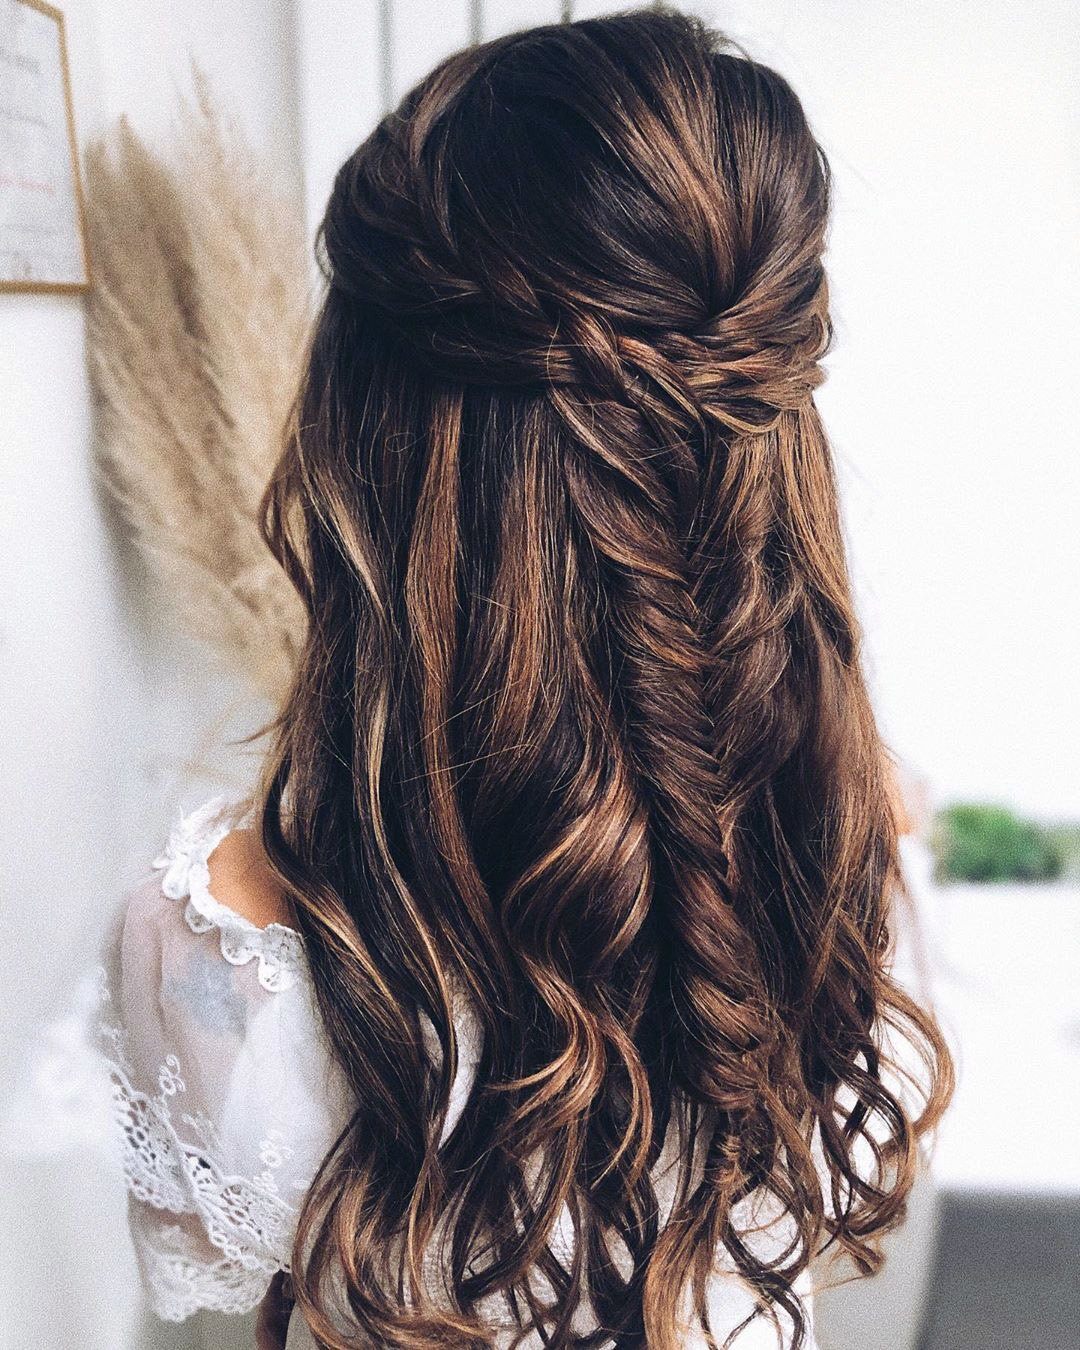 half up half down wedding hairstyles volume braided curls katya.valentinahair